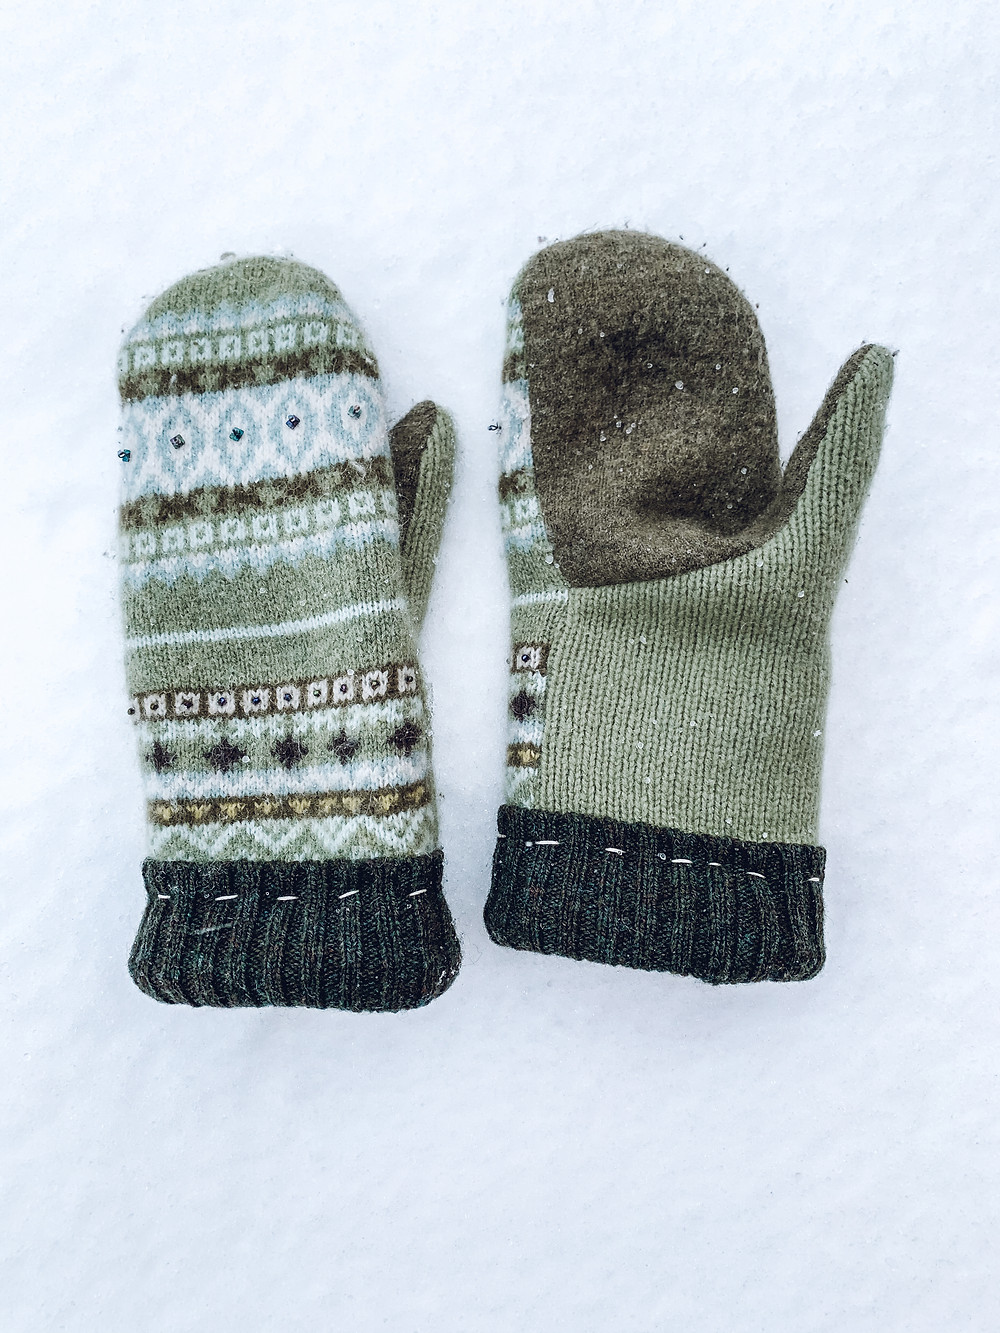 bernie sanders mittens, wool mittens, recycled wool mittens, recycled wool sweaters, upcycled wool sweater, womens wool mittens, kids wool mittens, mens wool mittens, family business, thankful thimble, hand made mittens, cashmere scarf, cashmere baby hat, recycled cashmere, upcycled cashmere, small business, ohio business, woll mitten shop, 4-H, warmest mittens, best mittens, hand sewn mittens